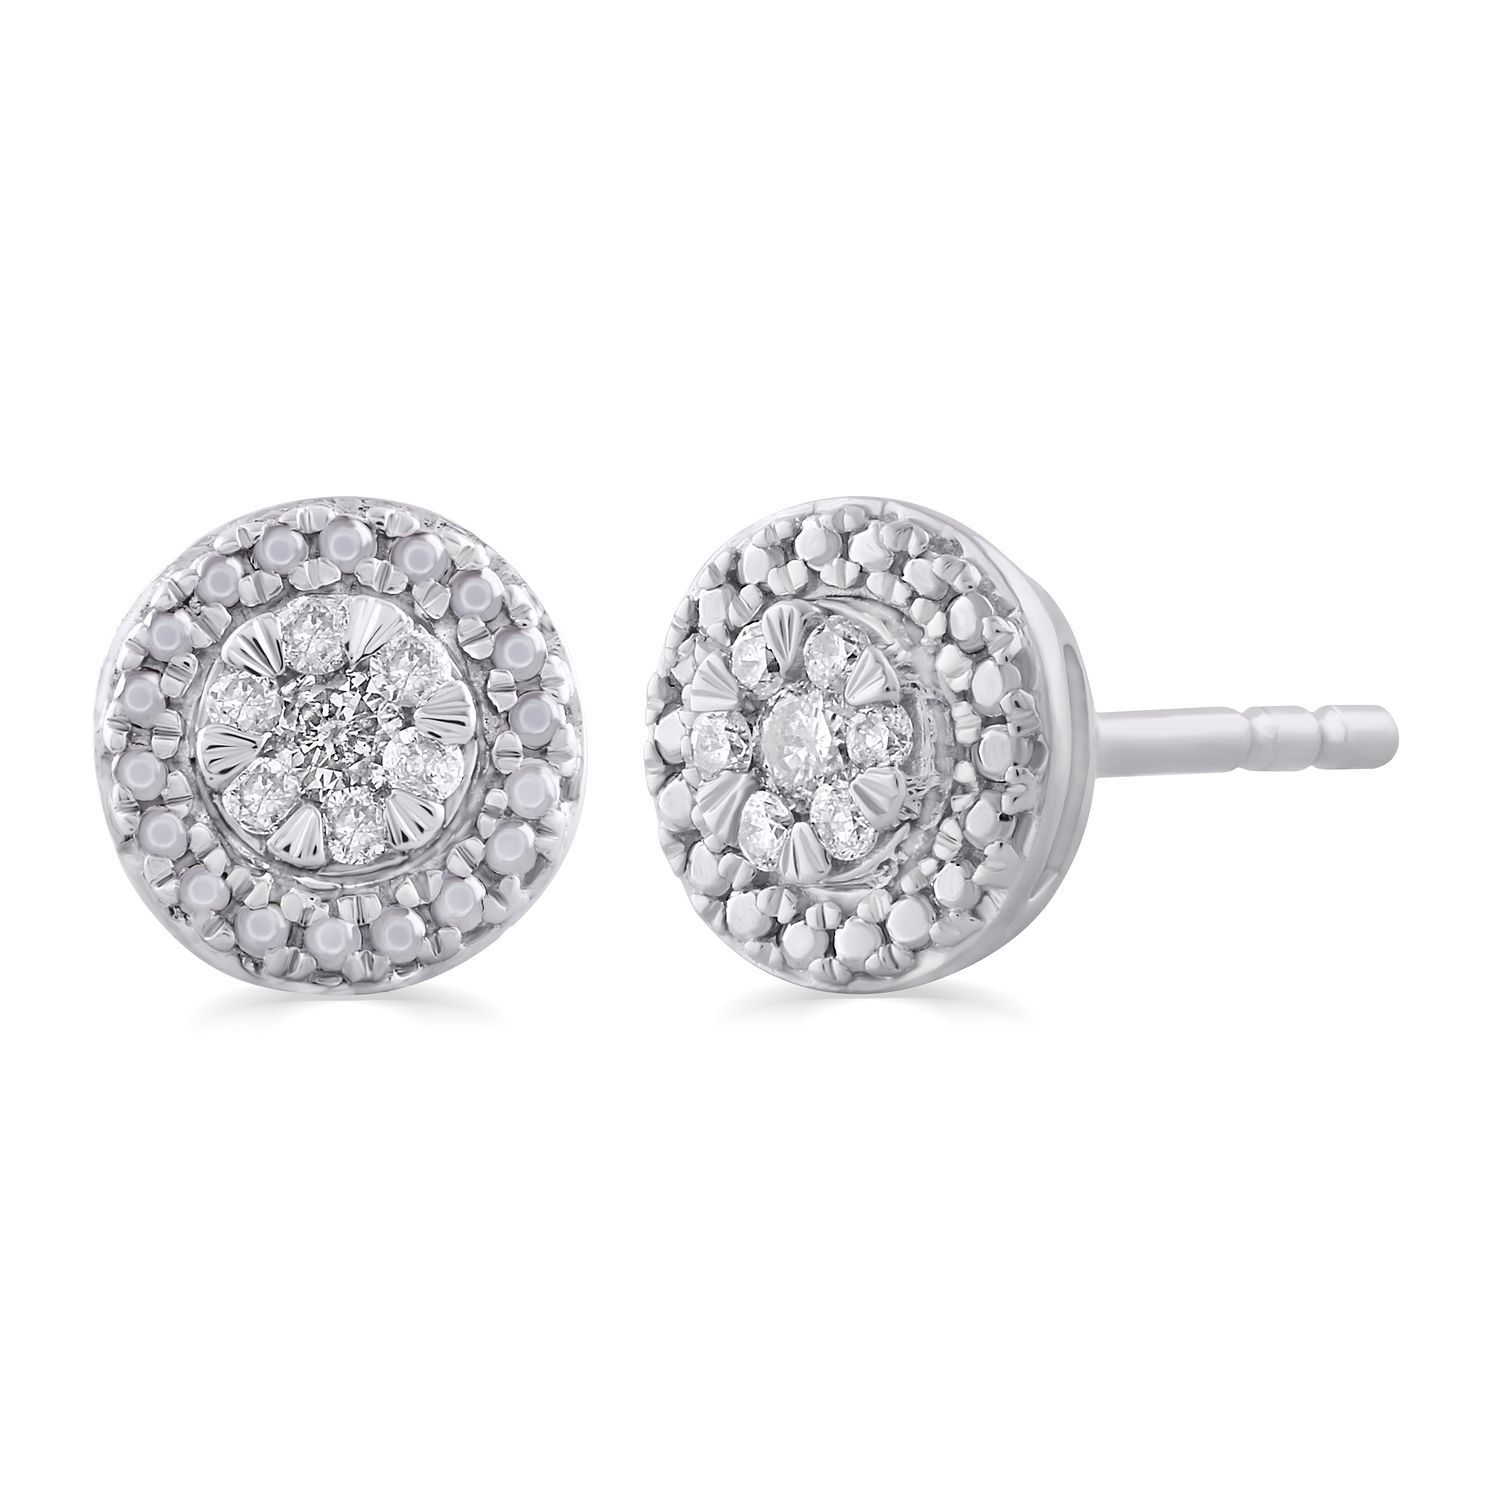 9ct White Gold 0.10ct Total Diamond Round Halo Stud Earrings - Product number 5032288